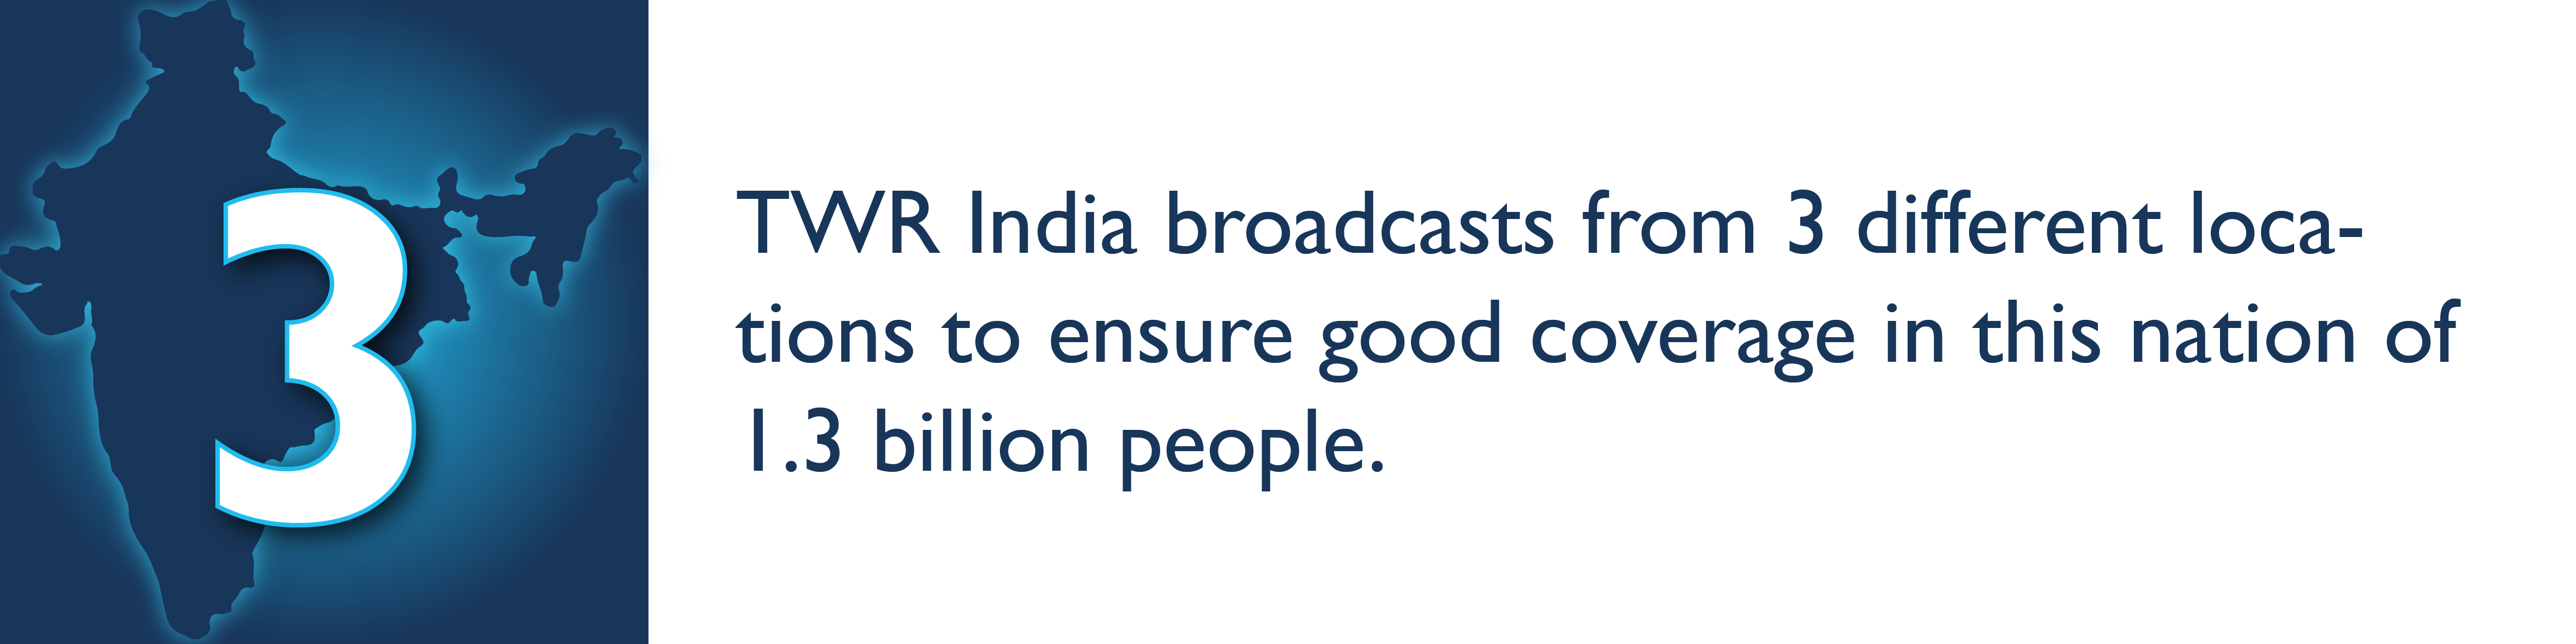 TWR India broadcasts from 3 different locations to ensure good coverage in this nation of 1.3 billion people.